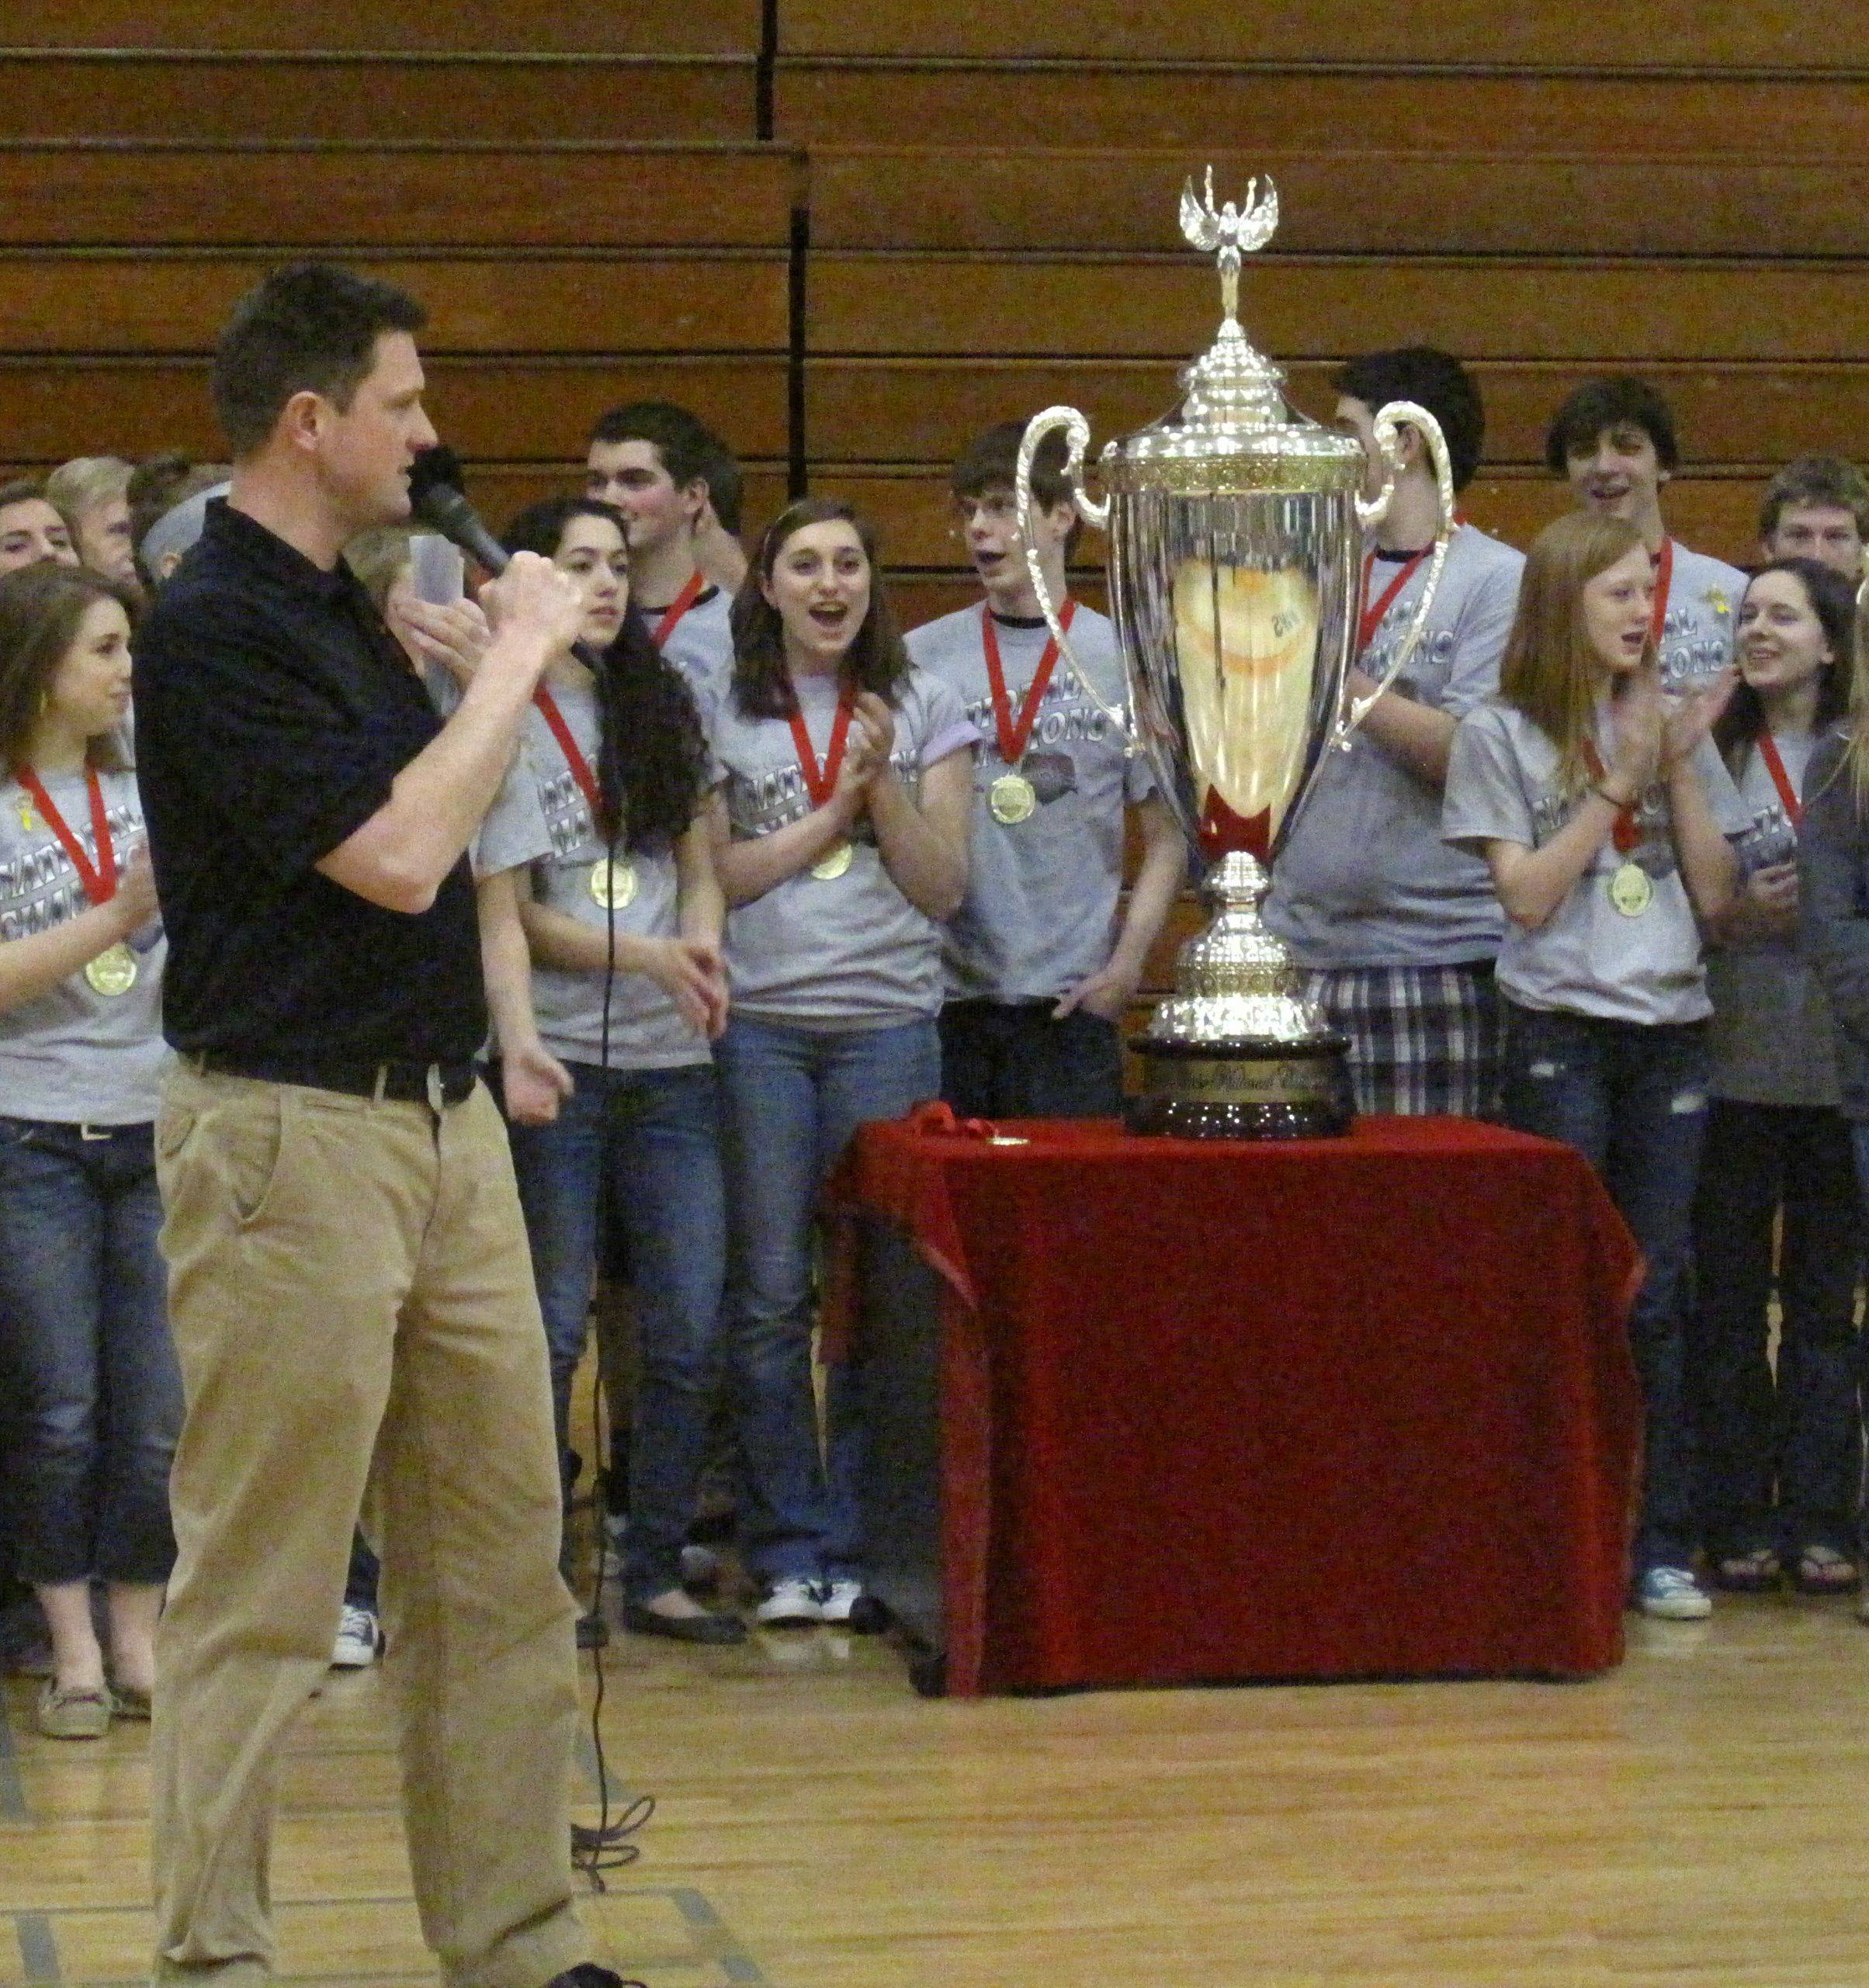 Wheaton Warrenville South High School show choir director John Burlace addresses students in front of his performers and the Show Choir Cup, which his group, the Classics, won at a national competition in Indianapolis.